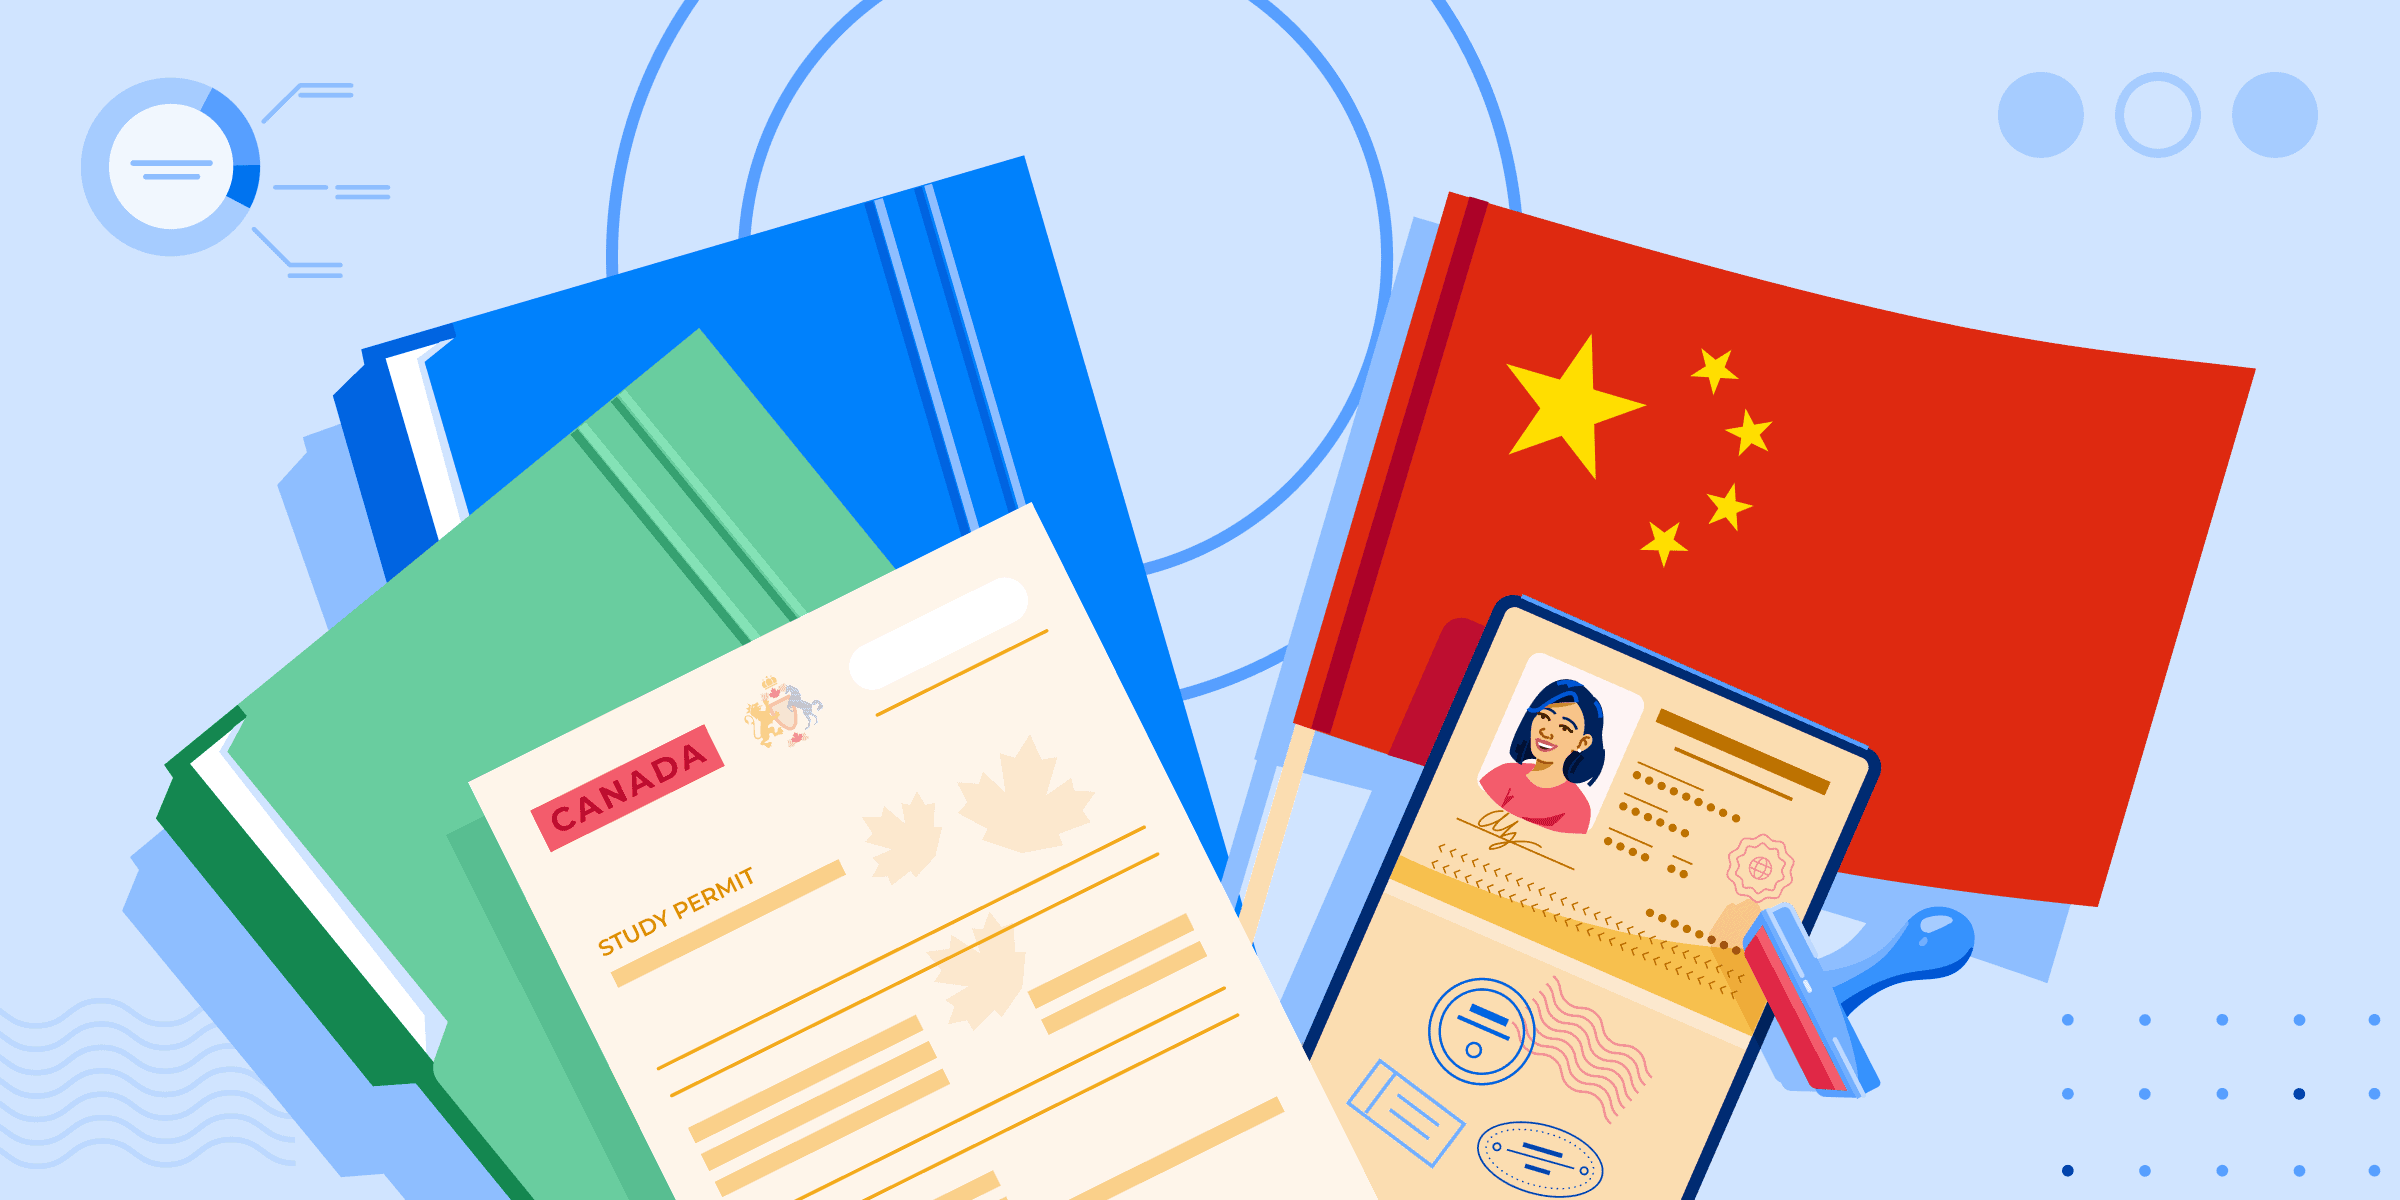 A Chinese flag, a passport, a study permit, and some file folders.